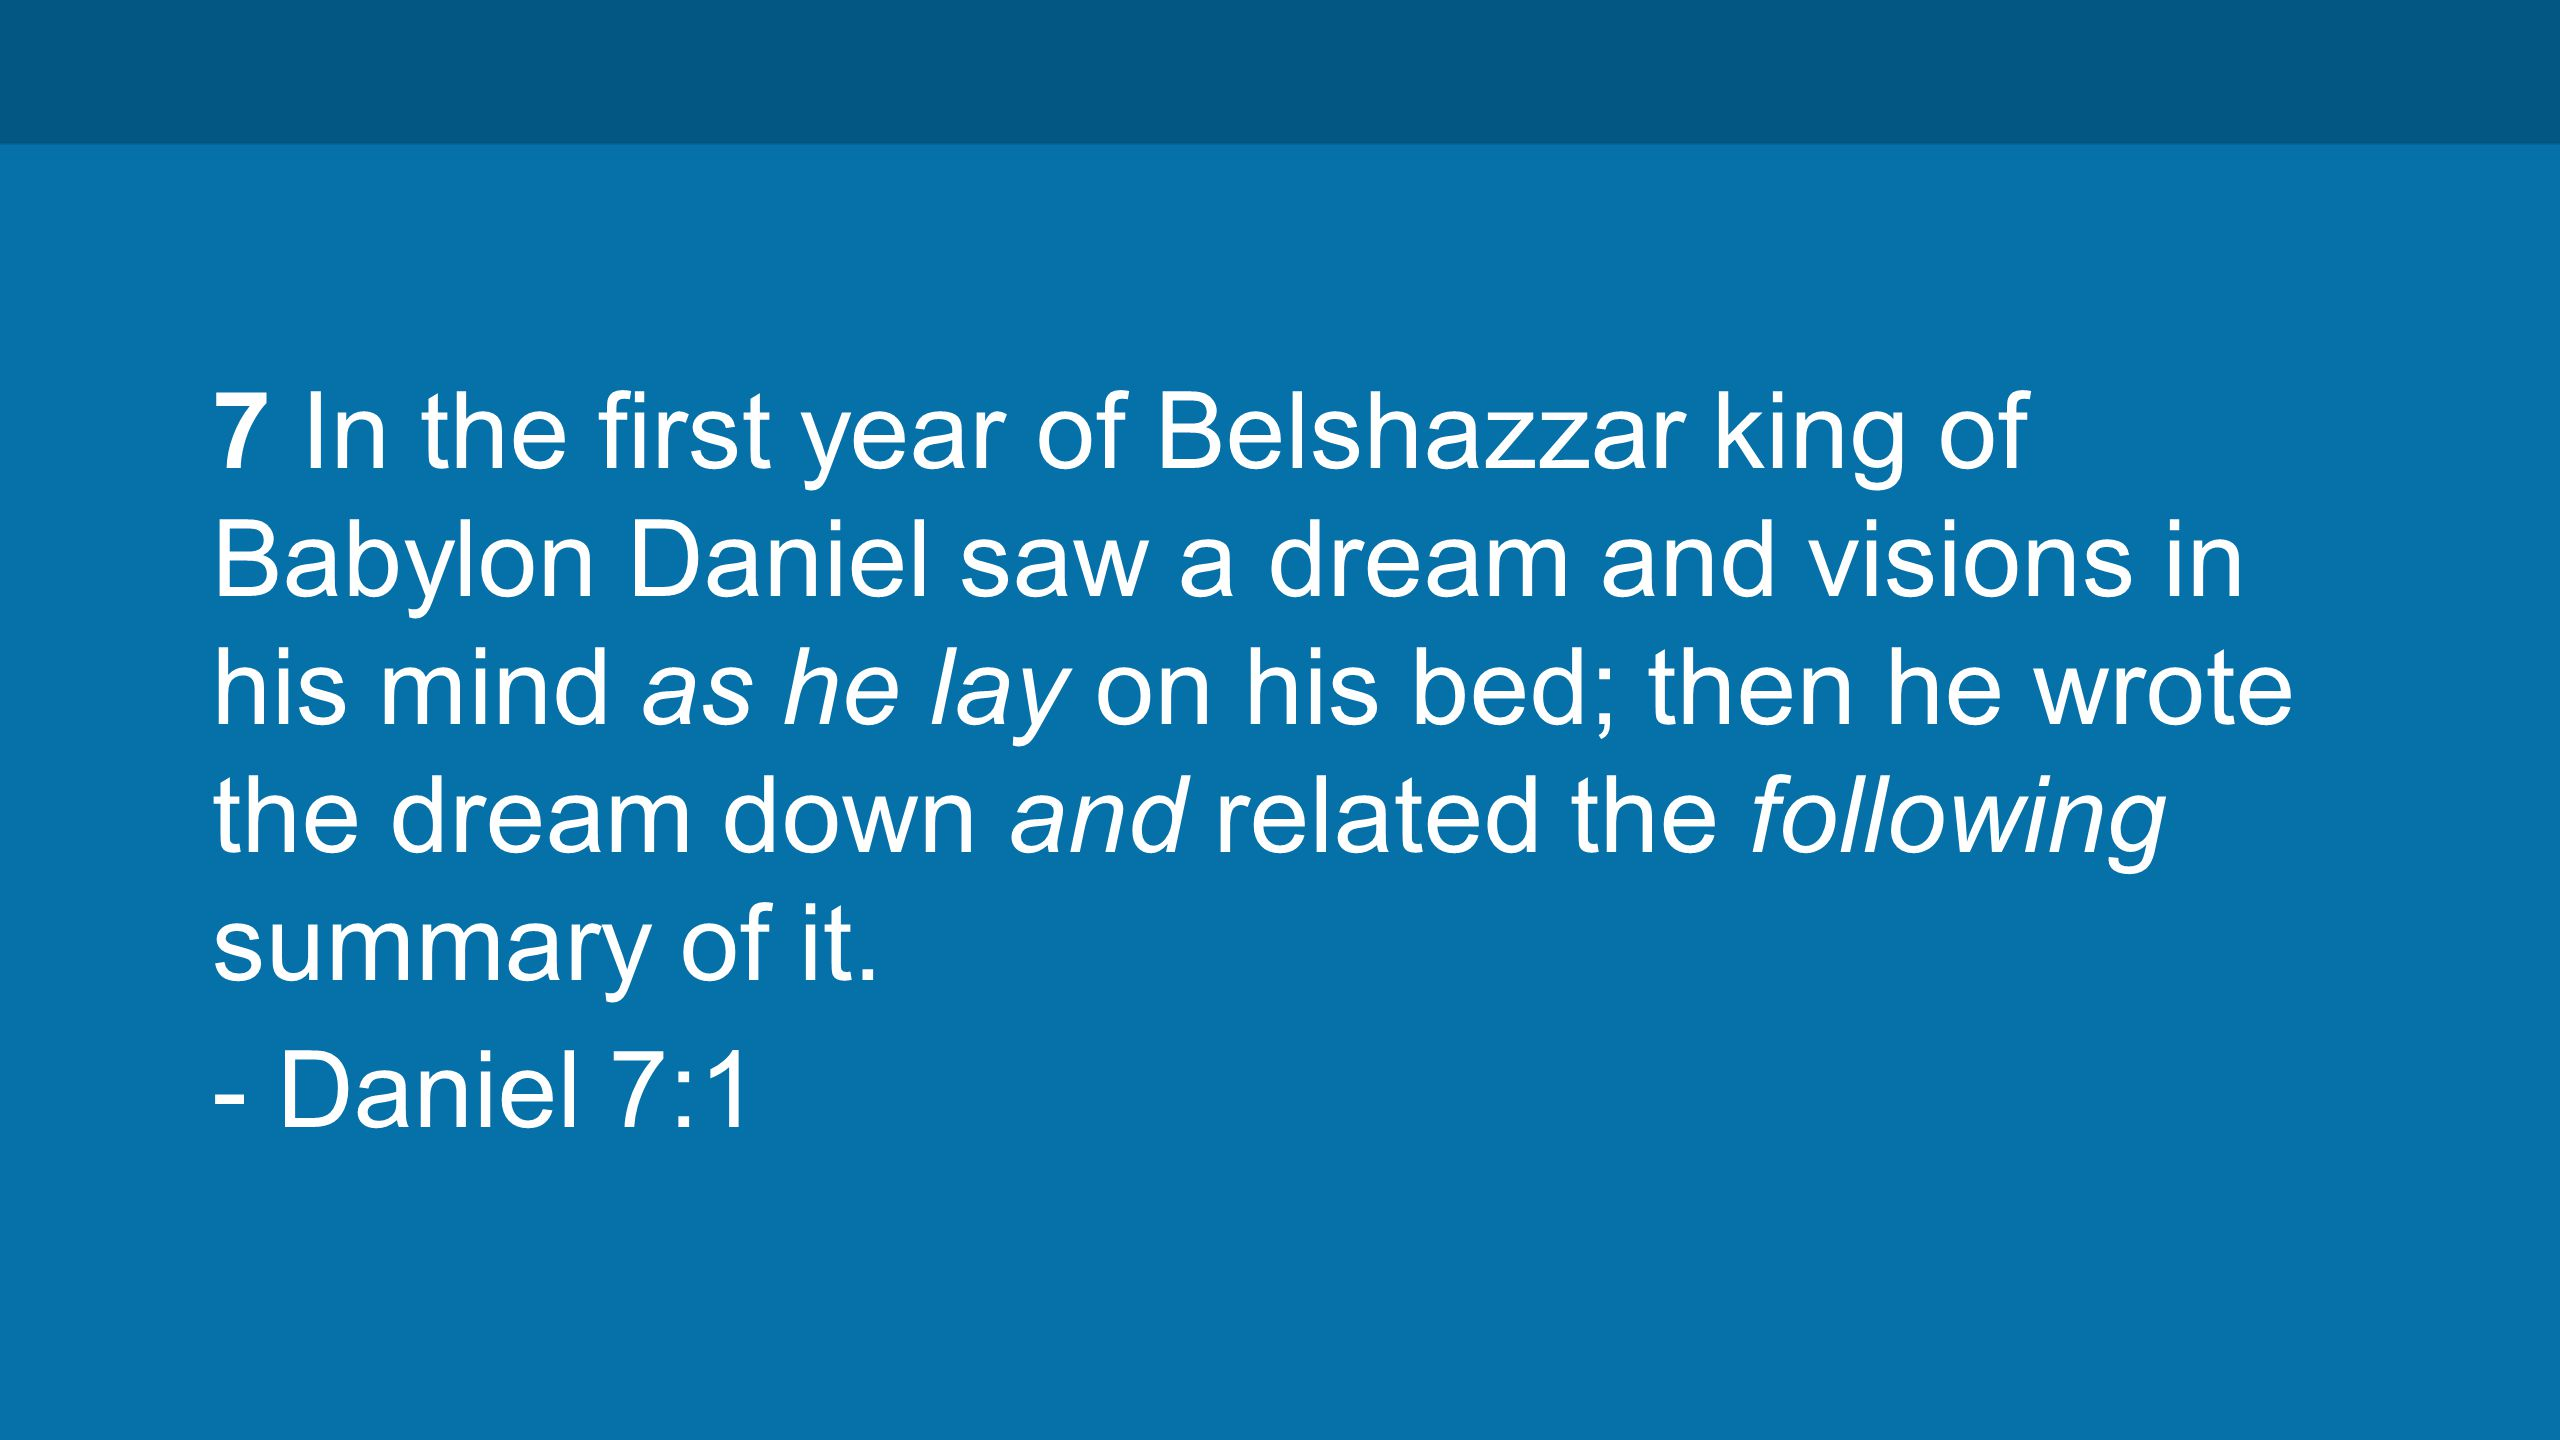 7 In the first year of Belshazzar king of Babylon Daniel saw a dream and visions in his mind as he lay on his bed; then he wrote the dream down and related the following summary of it.